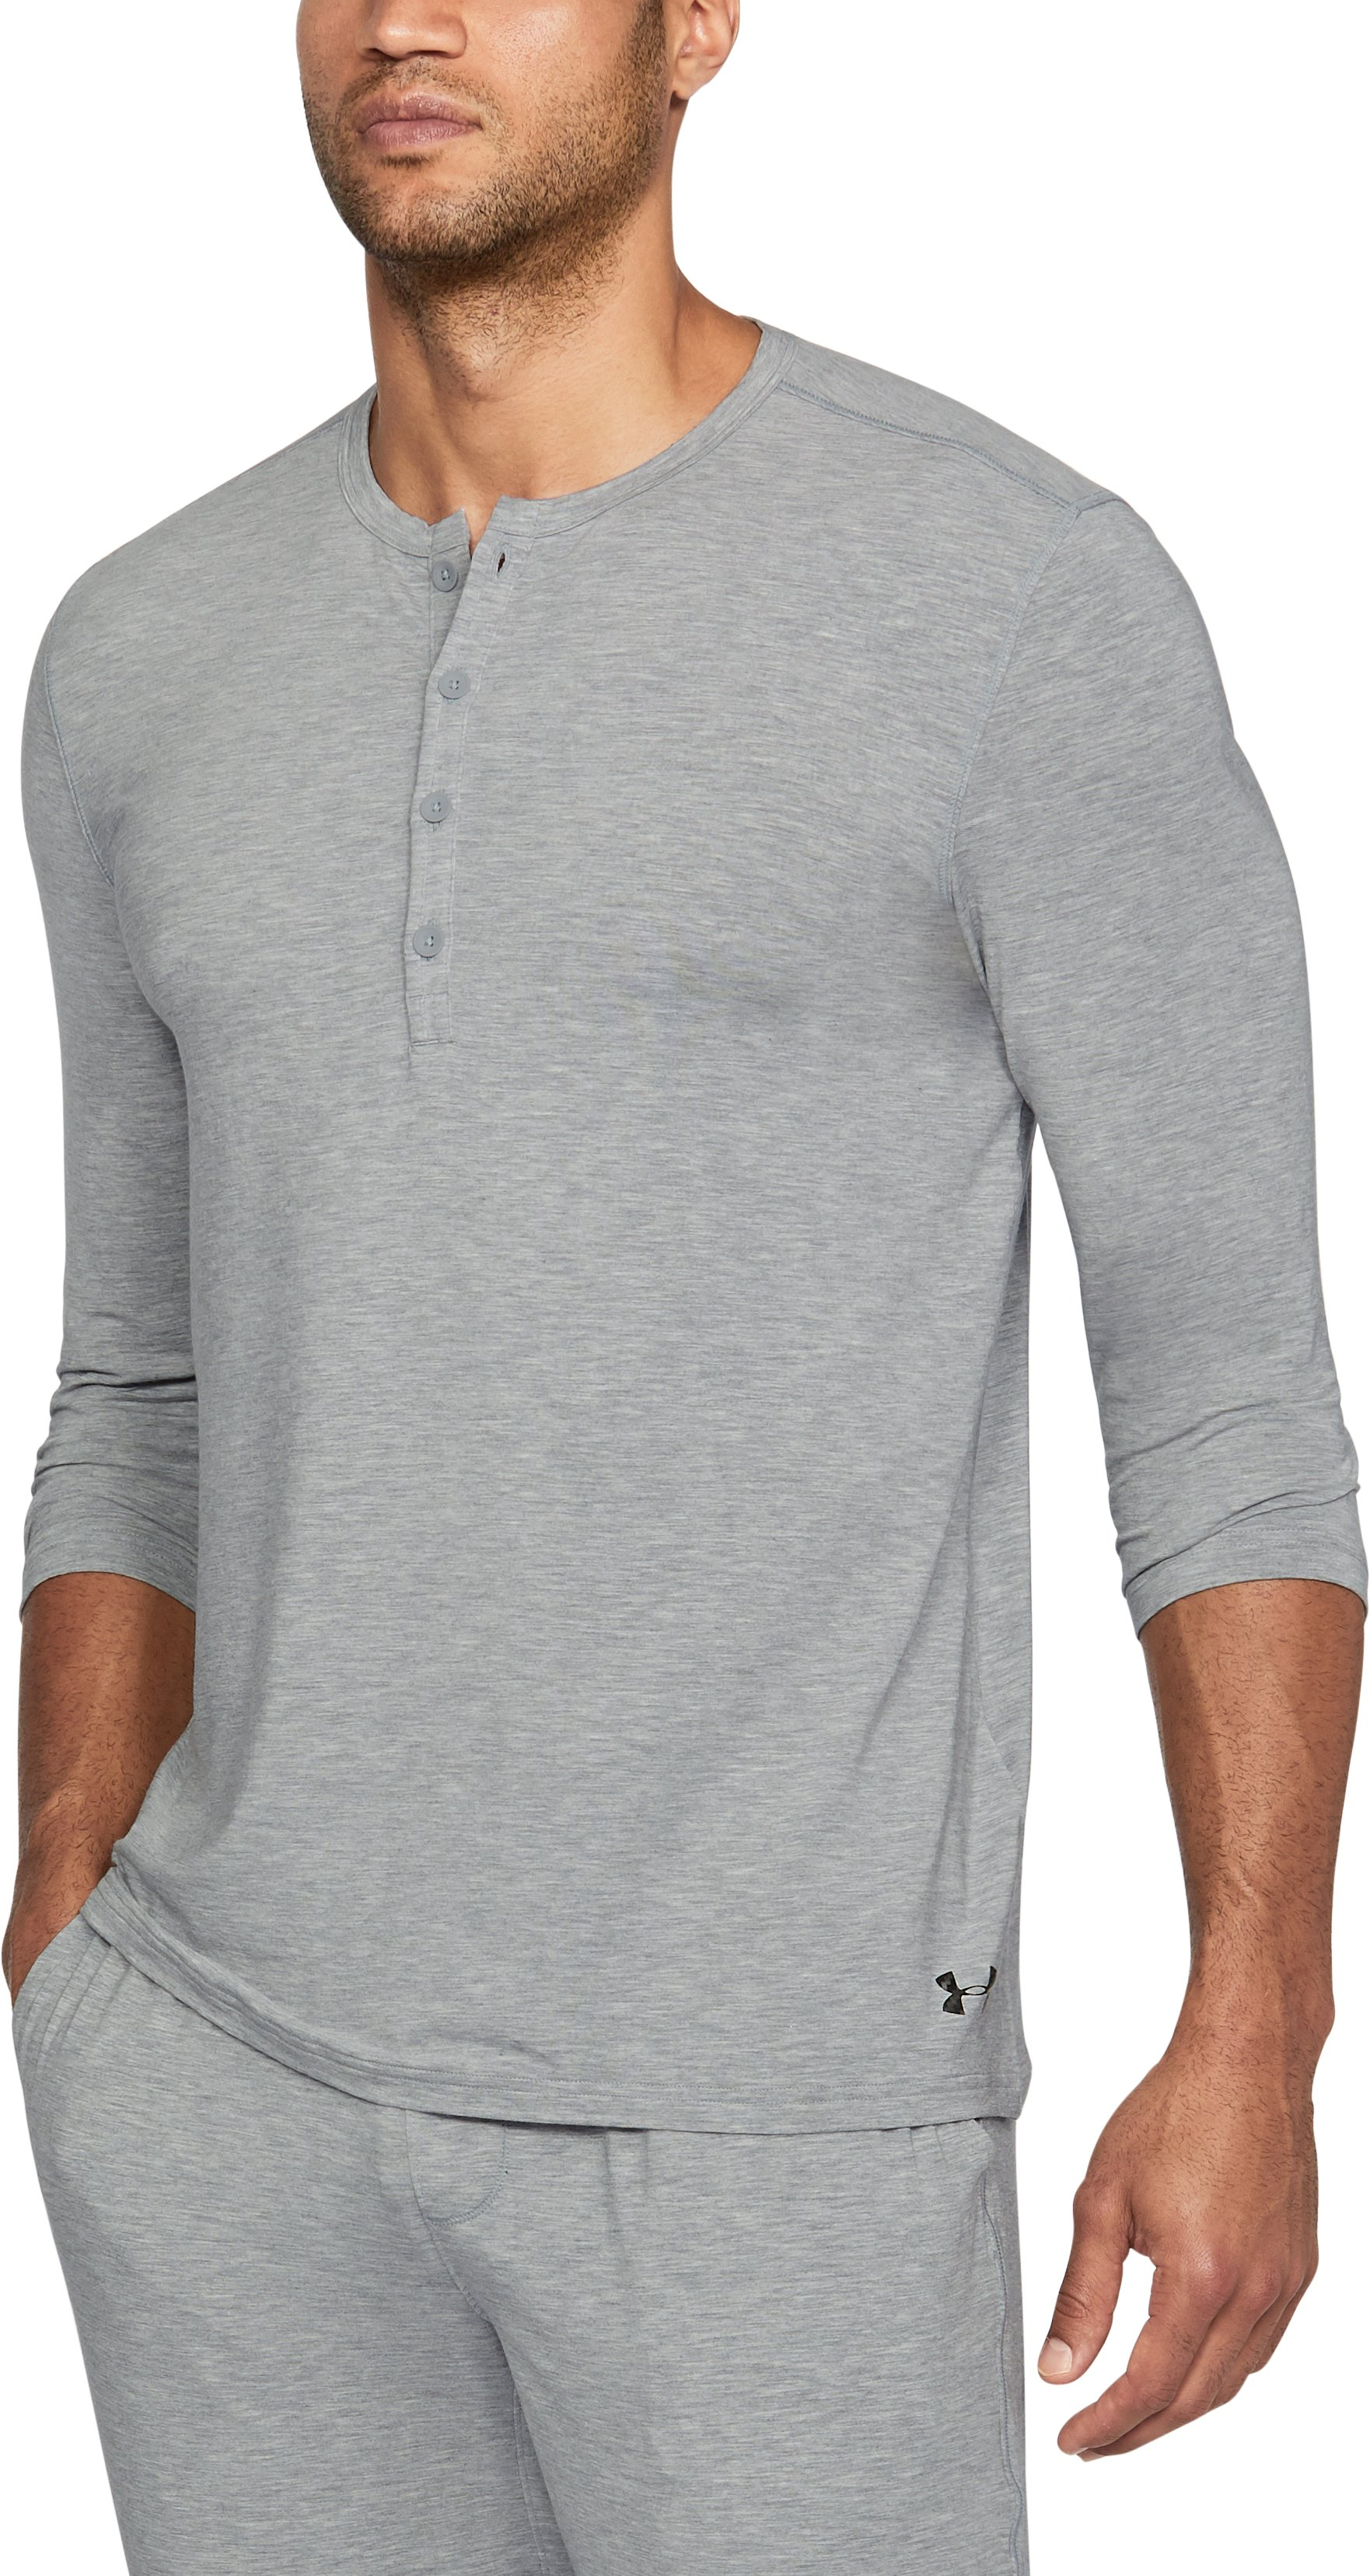 Men's Athlete Recovery Ultra Comfort Sleepwear Henley, True Gray Heather, undefined